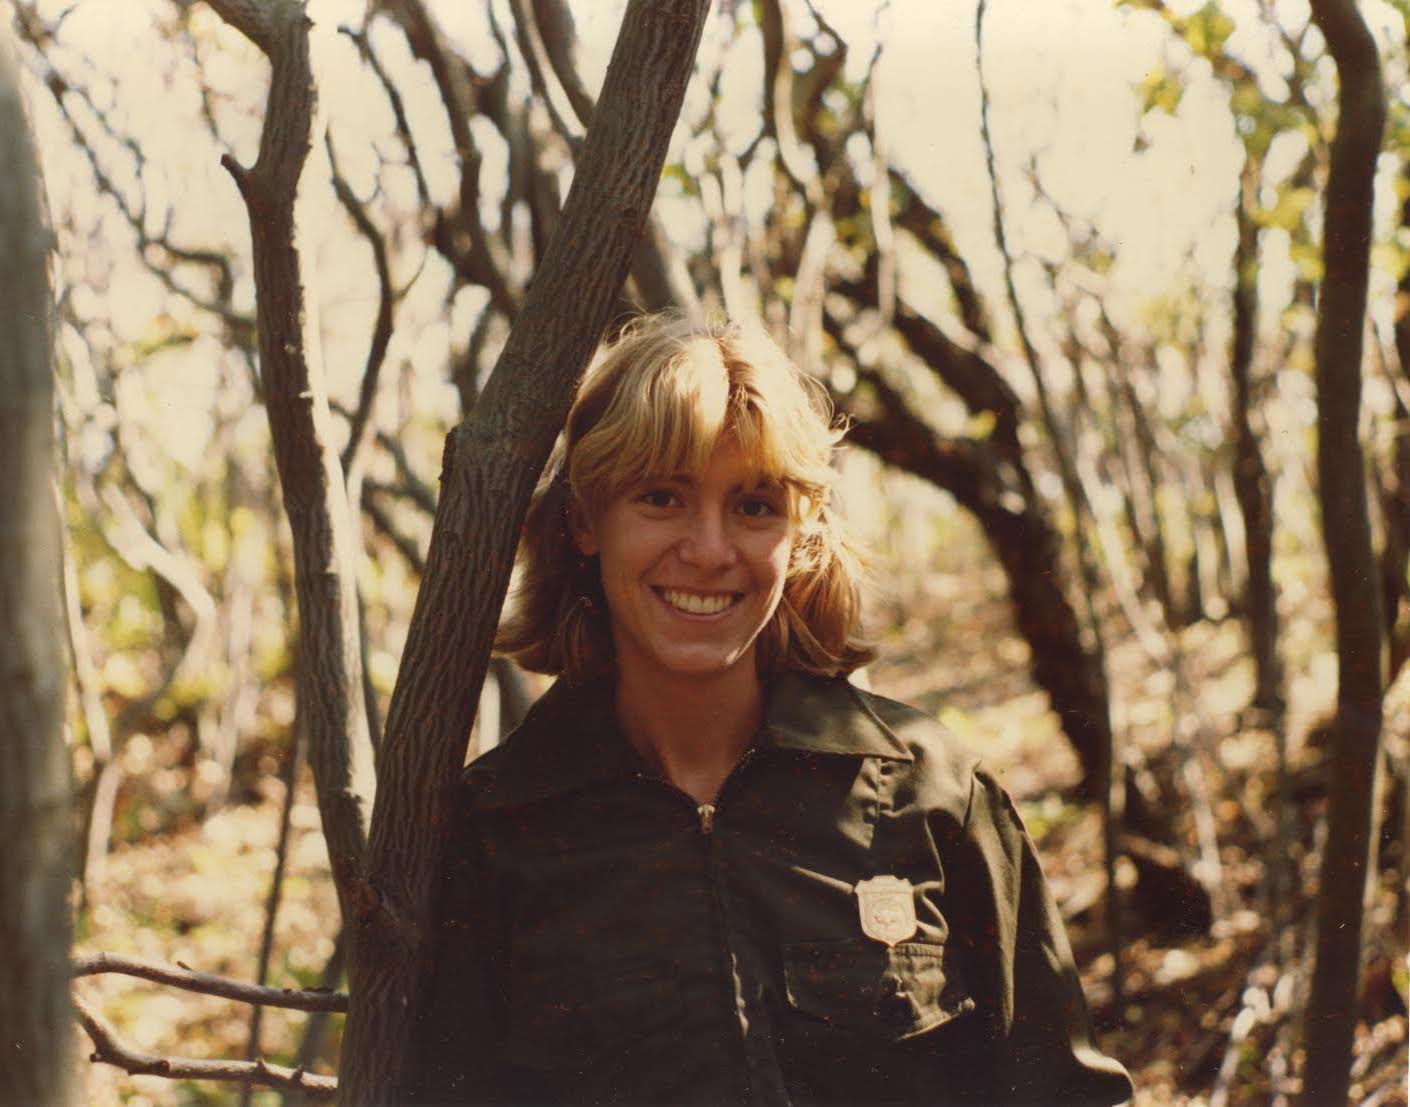 Sally Canepa during her days as a National Park Service Ranger on Fire Island in the Sunken Forest Watch Hill in 1979.